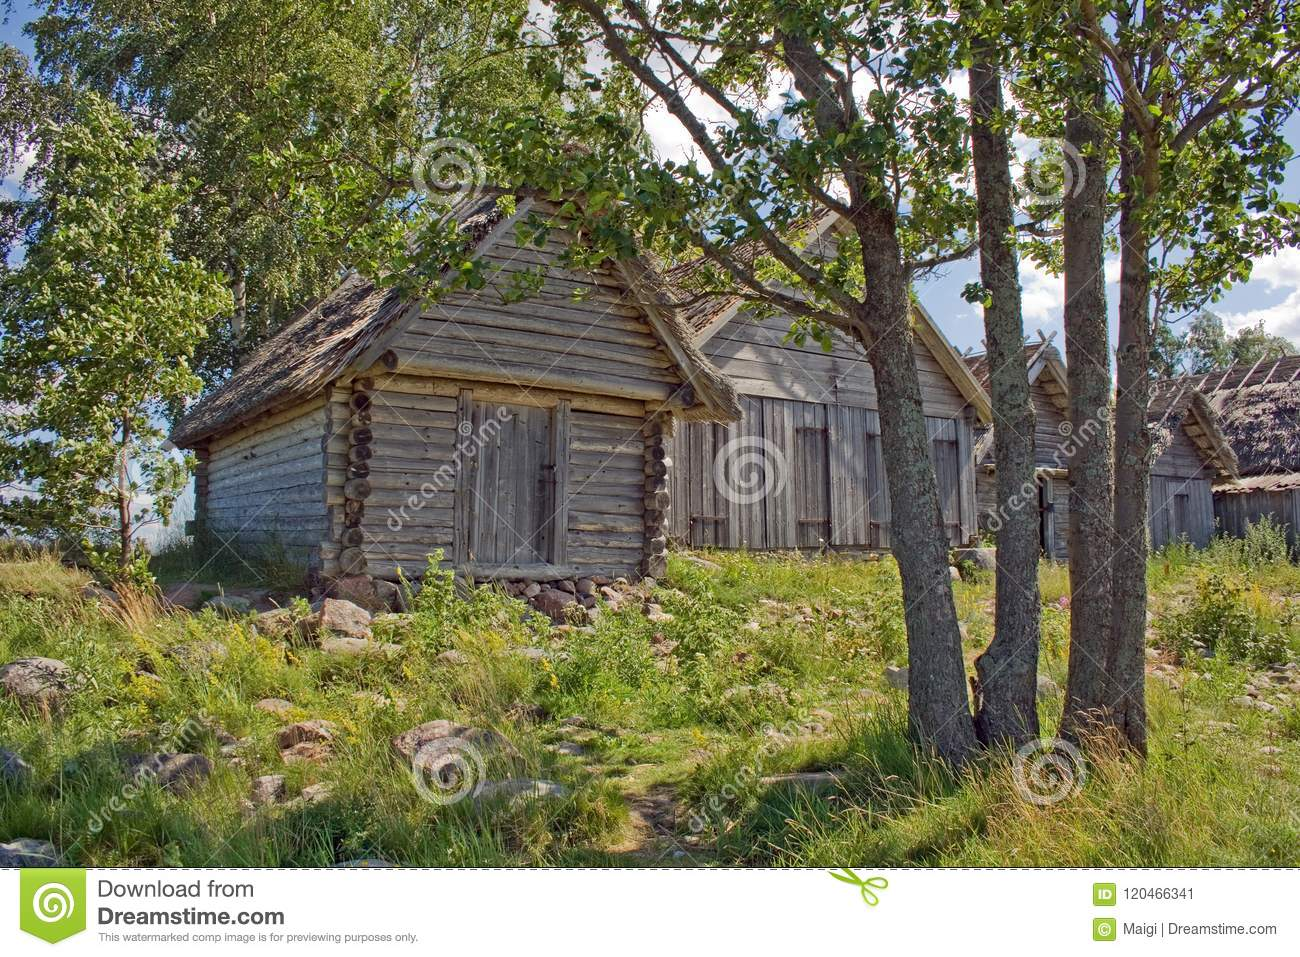 Download Ancient Wooden Net-sheds On A Sunny Day Stock Image - Image of beautiful, wood: 120466341